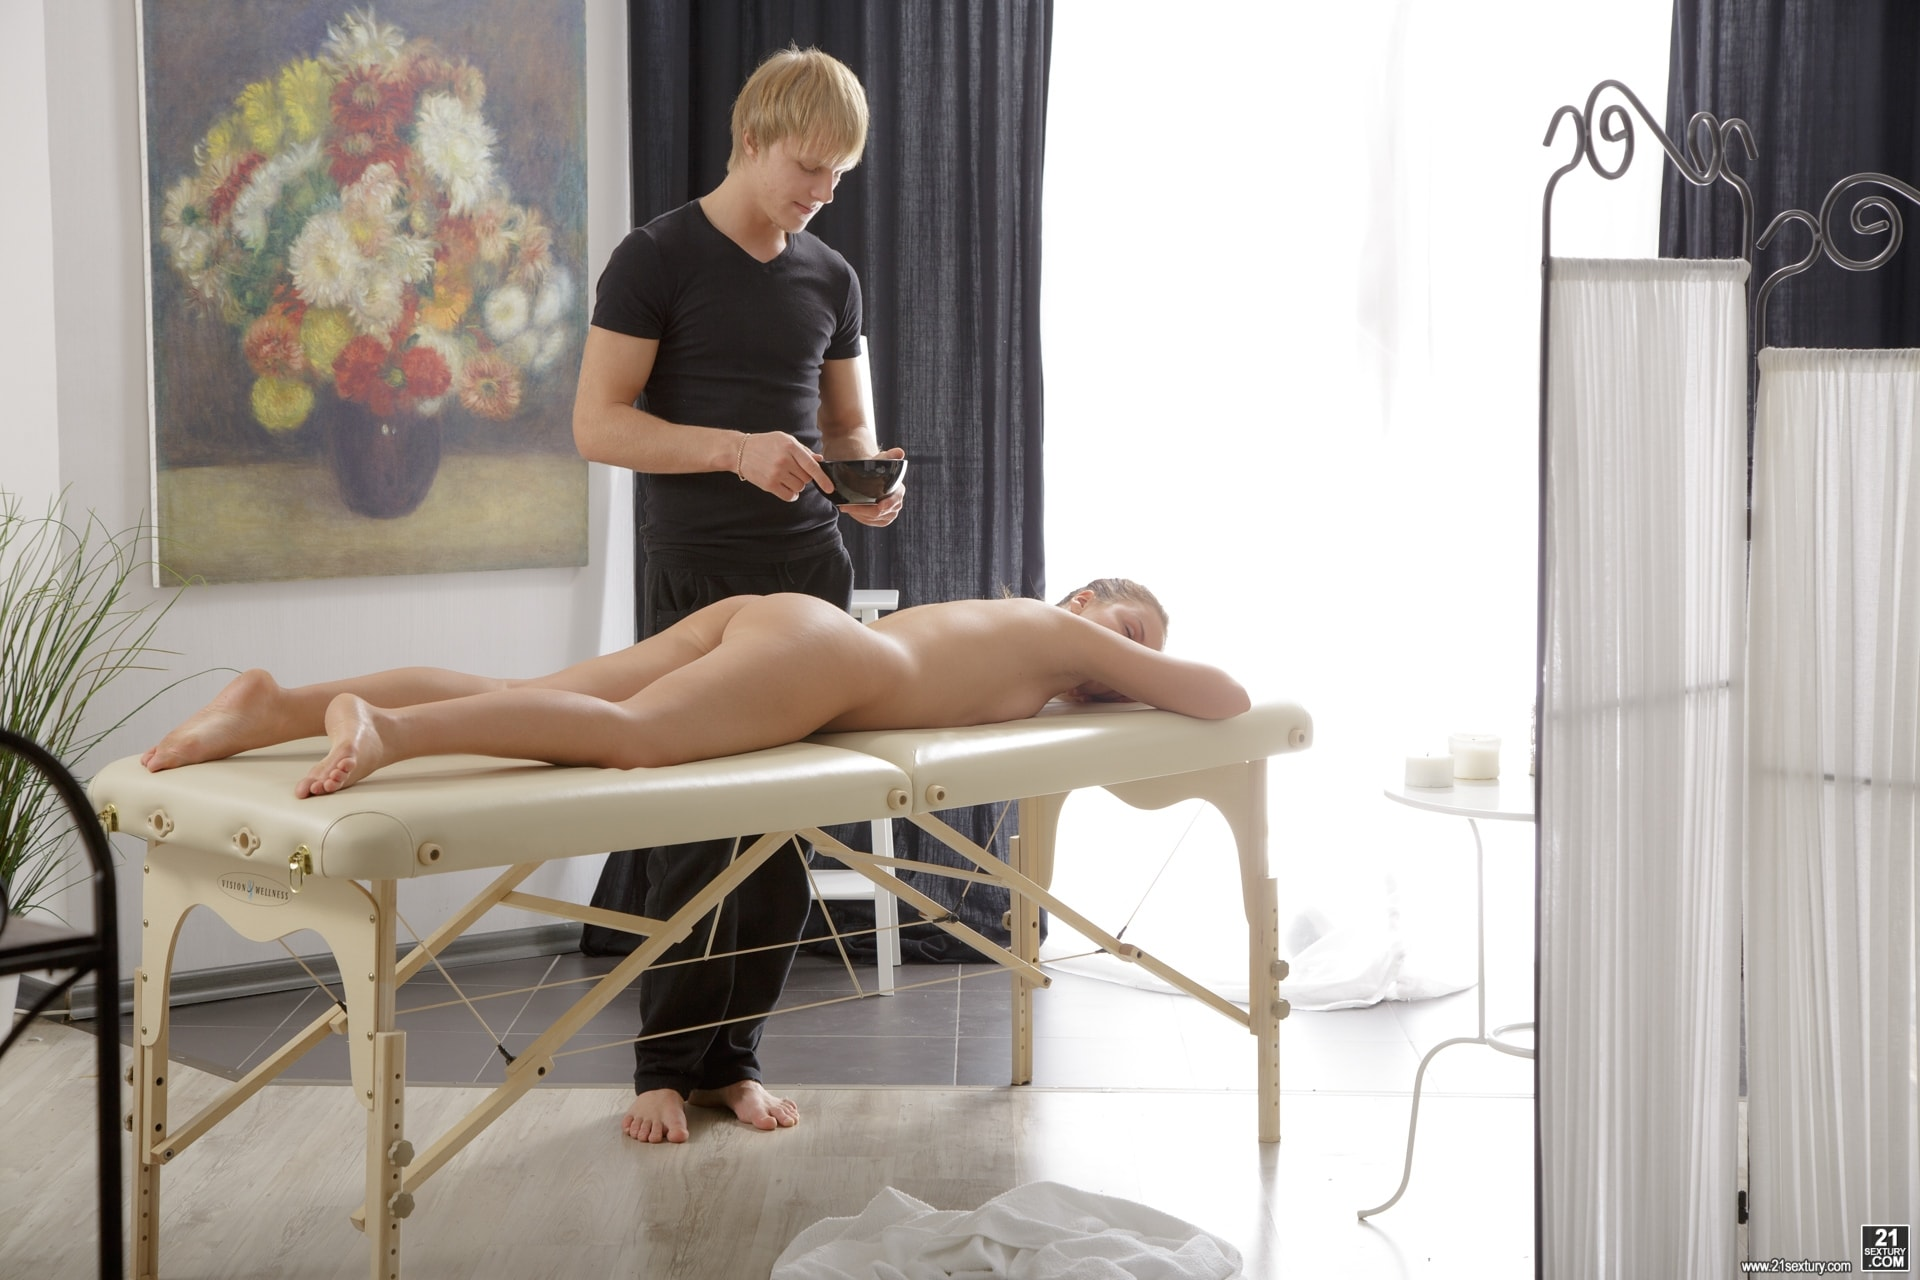 21Sextury 'Relaxation Session' starring Emma Brown (Photo 16)